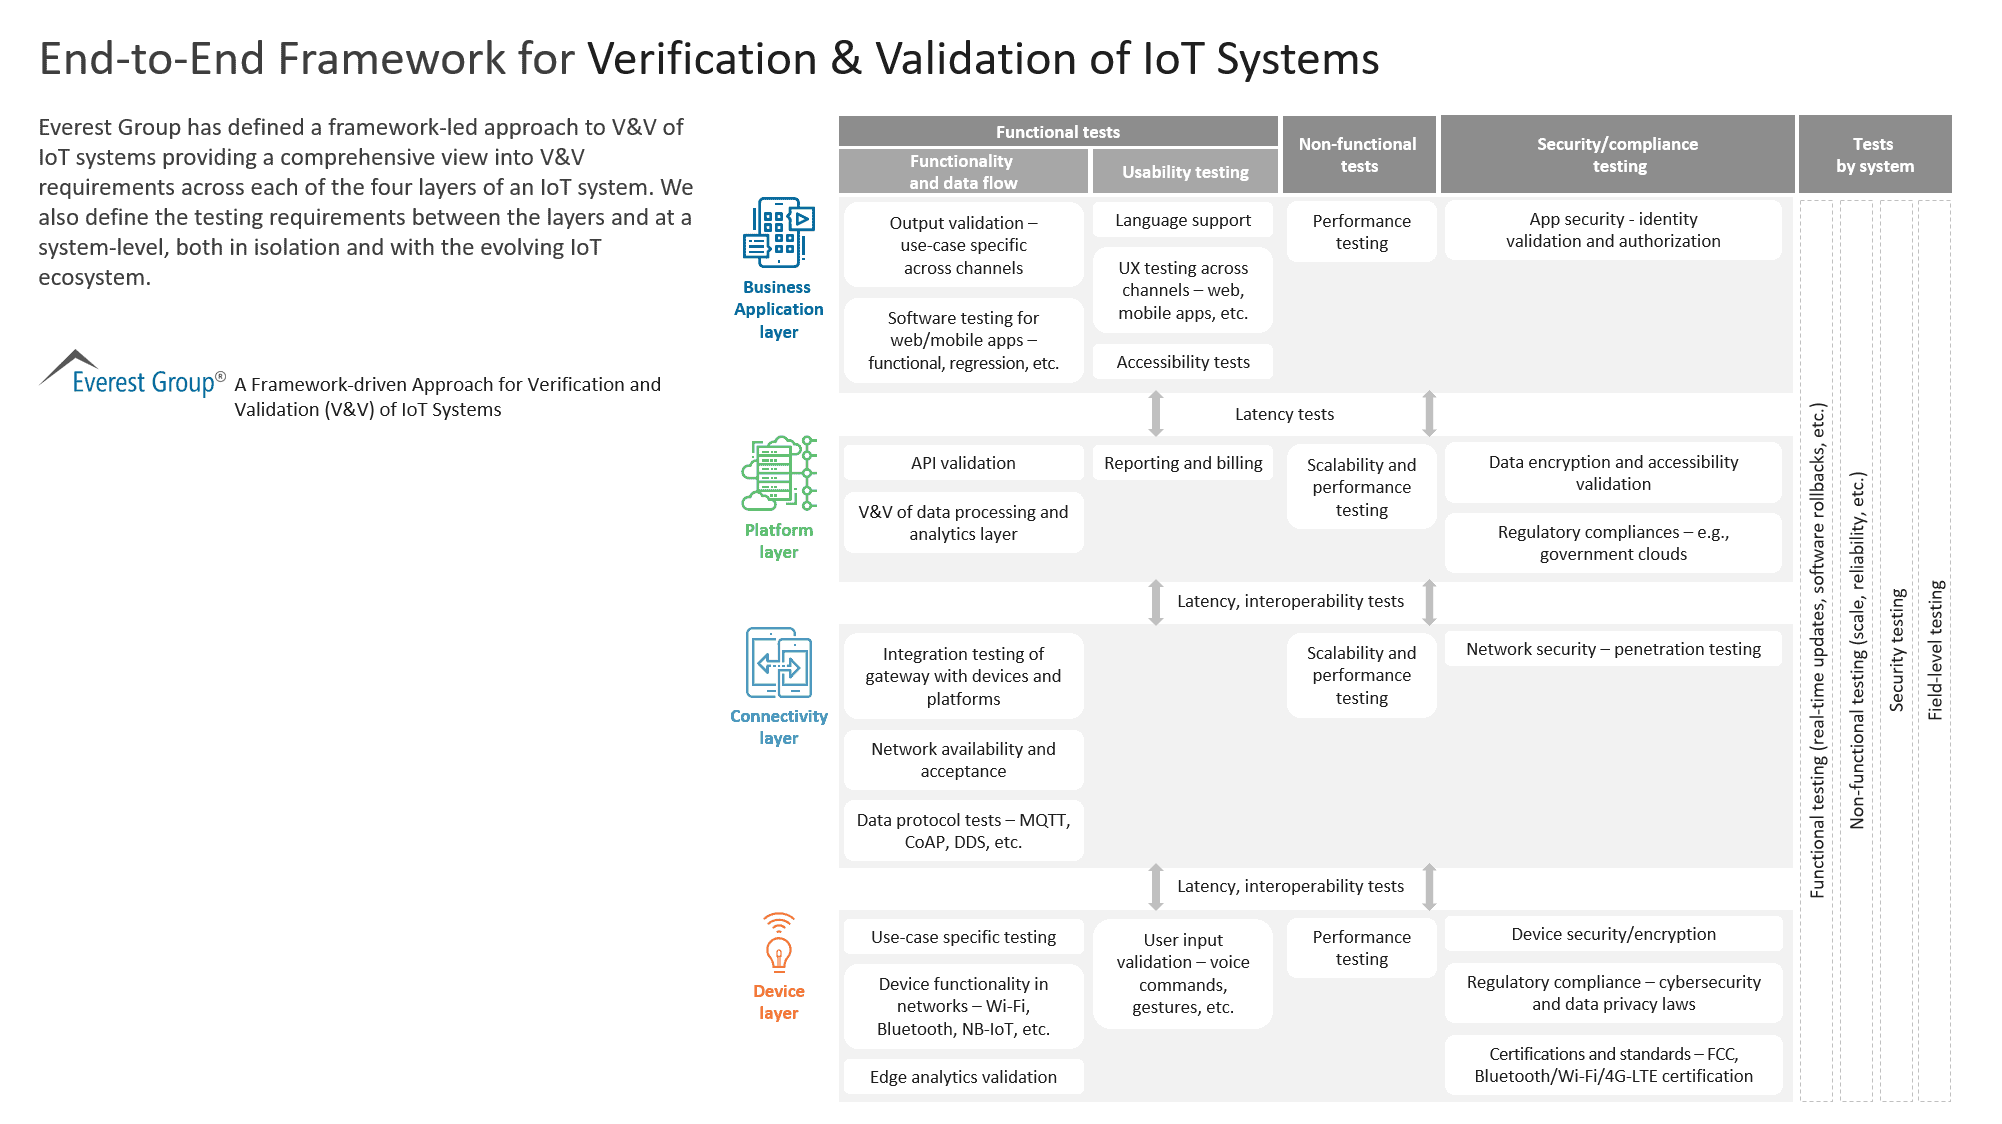 End-to-End Framework for Verification & Validation of IoT Systems